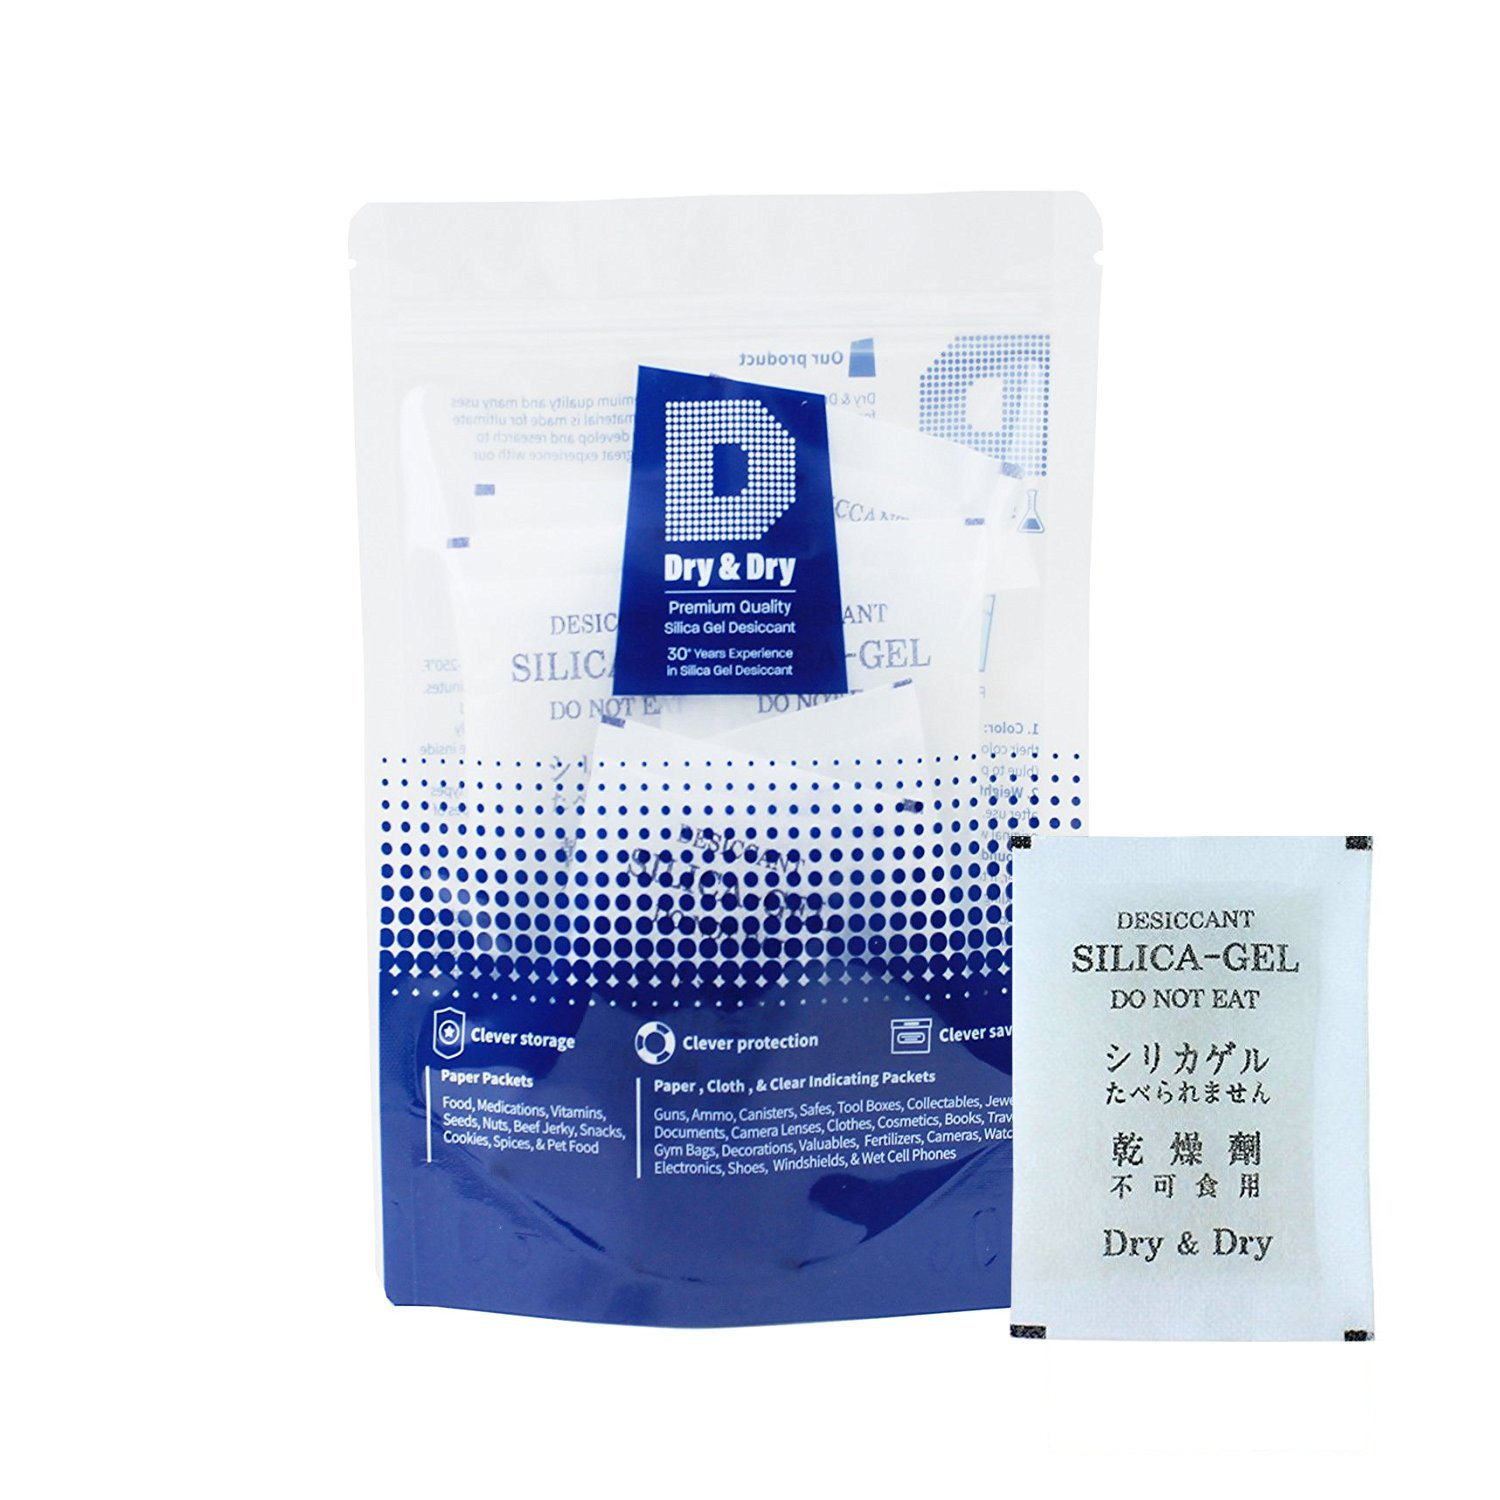 DRY&DRY 20 Gram [30 Packets] Premium Pure & Safe Silica Gel Packets Desiccant Dehumidifiers - Rechargeable Fabric